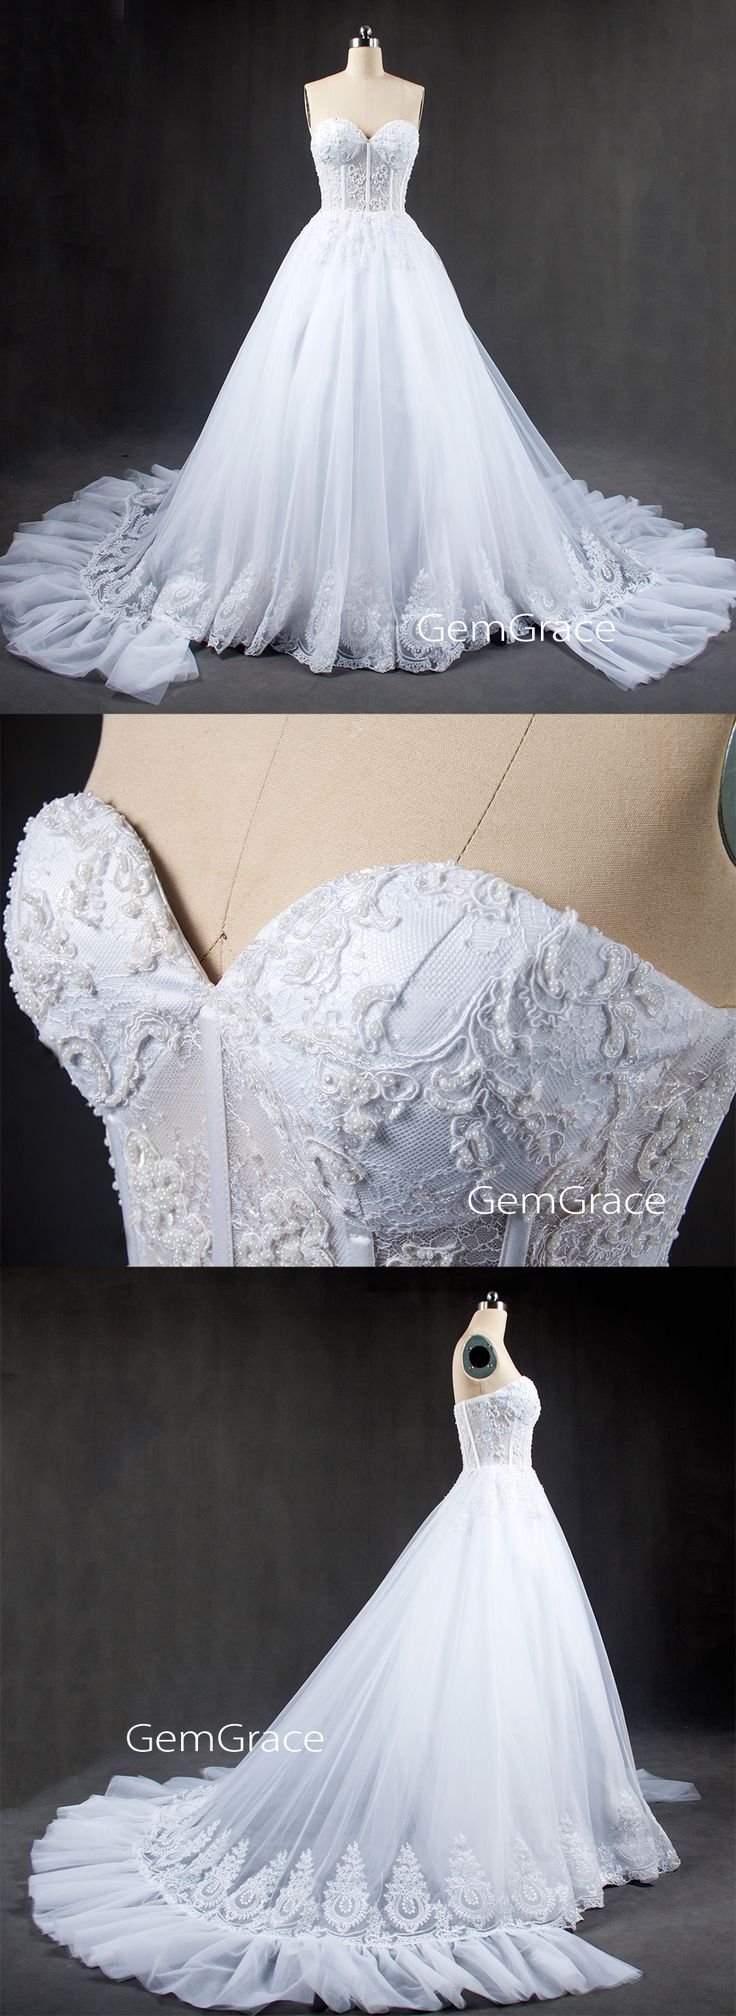 If you want luxury, then our GEM collection is the best choice. #customweddingdress